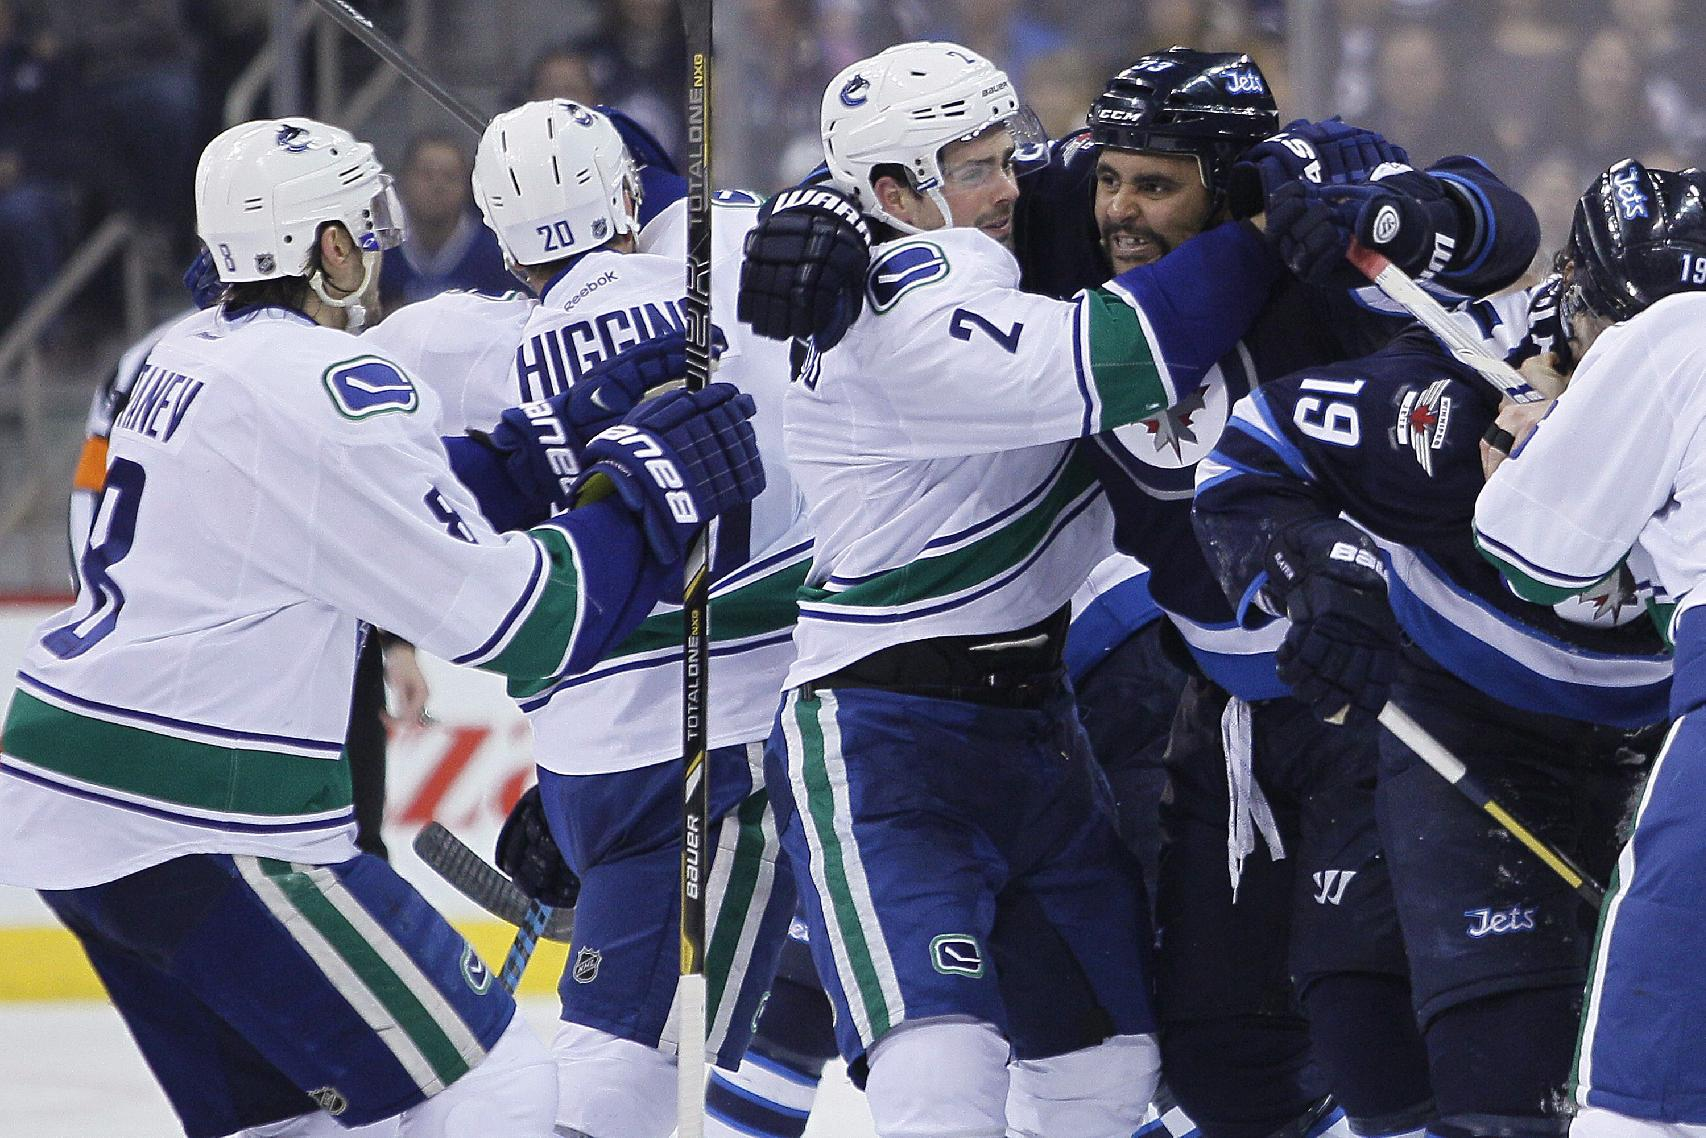 Vancouver Canucks' Shawn Matthias (27) holds back Winnipeg Jets' Dustin Byfuglien (33) from Canucks' Christopher Tanev (8) during the second period of an NHL hockey game Wednesday, March 12, 2014, in Winnipeg, Manitoba